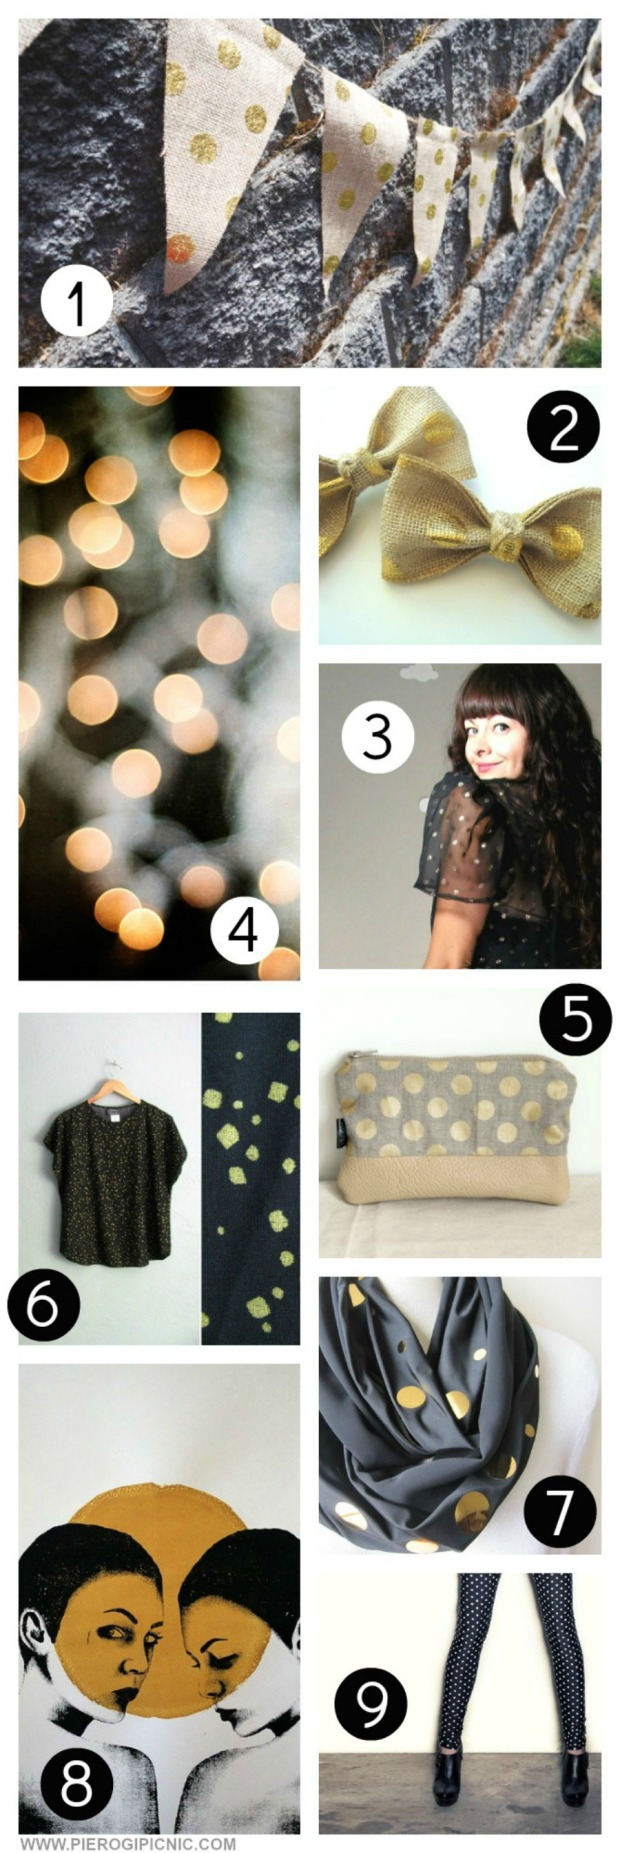 polka dot pretty: trend